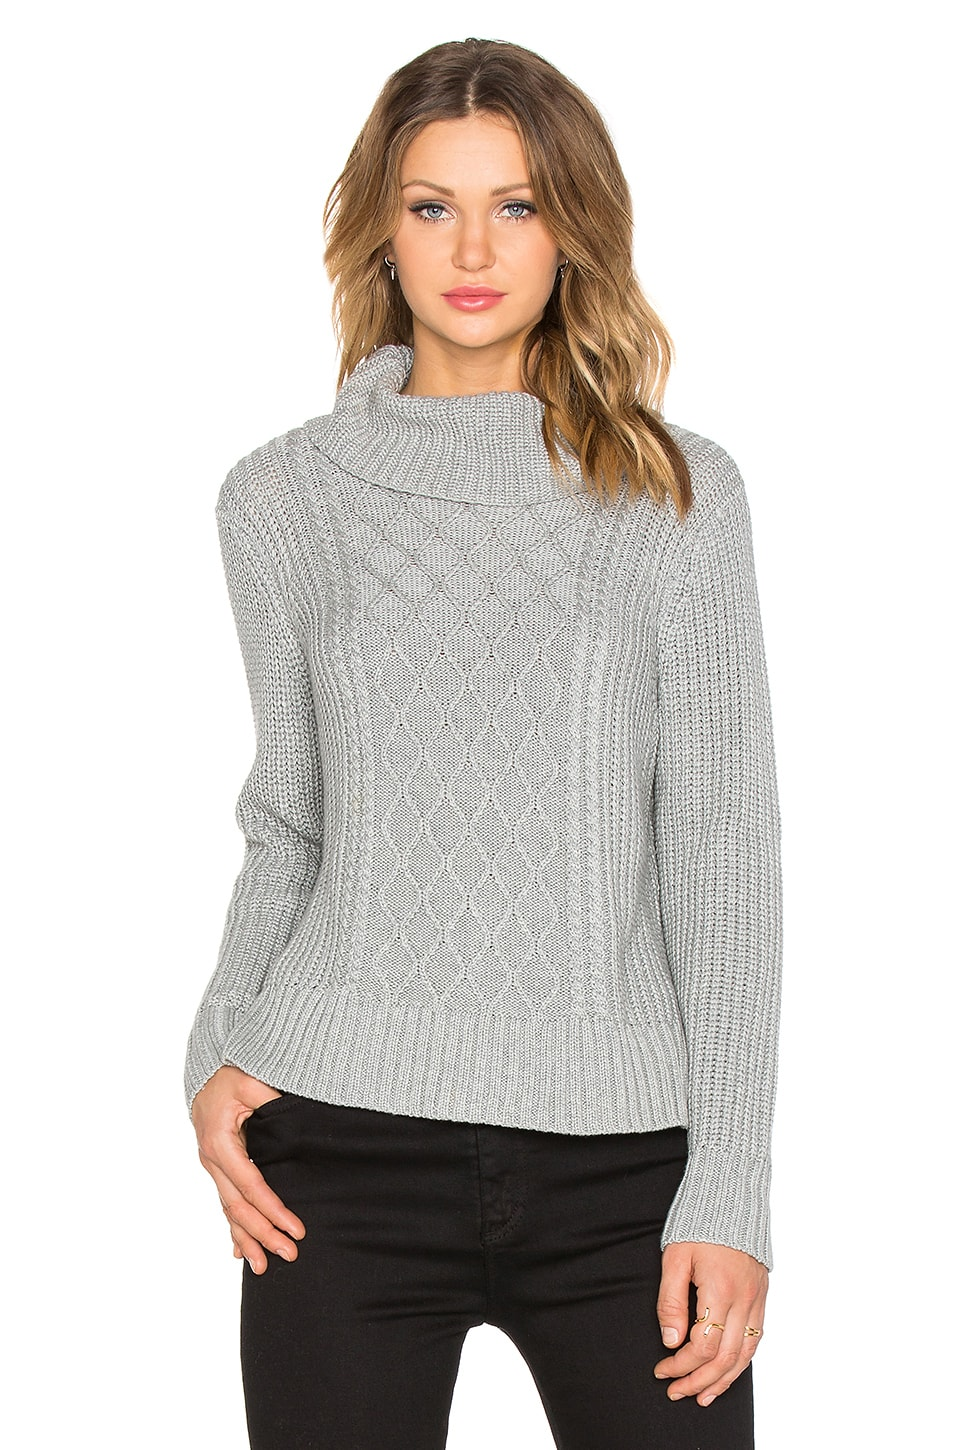 Minty Meets Munt Honeycomb Knit Sweater in Grey Melange